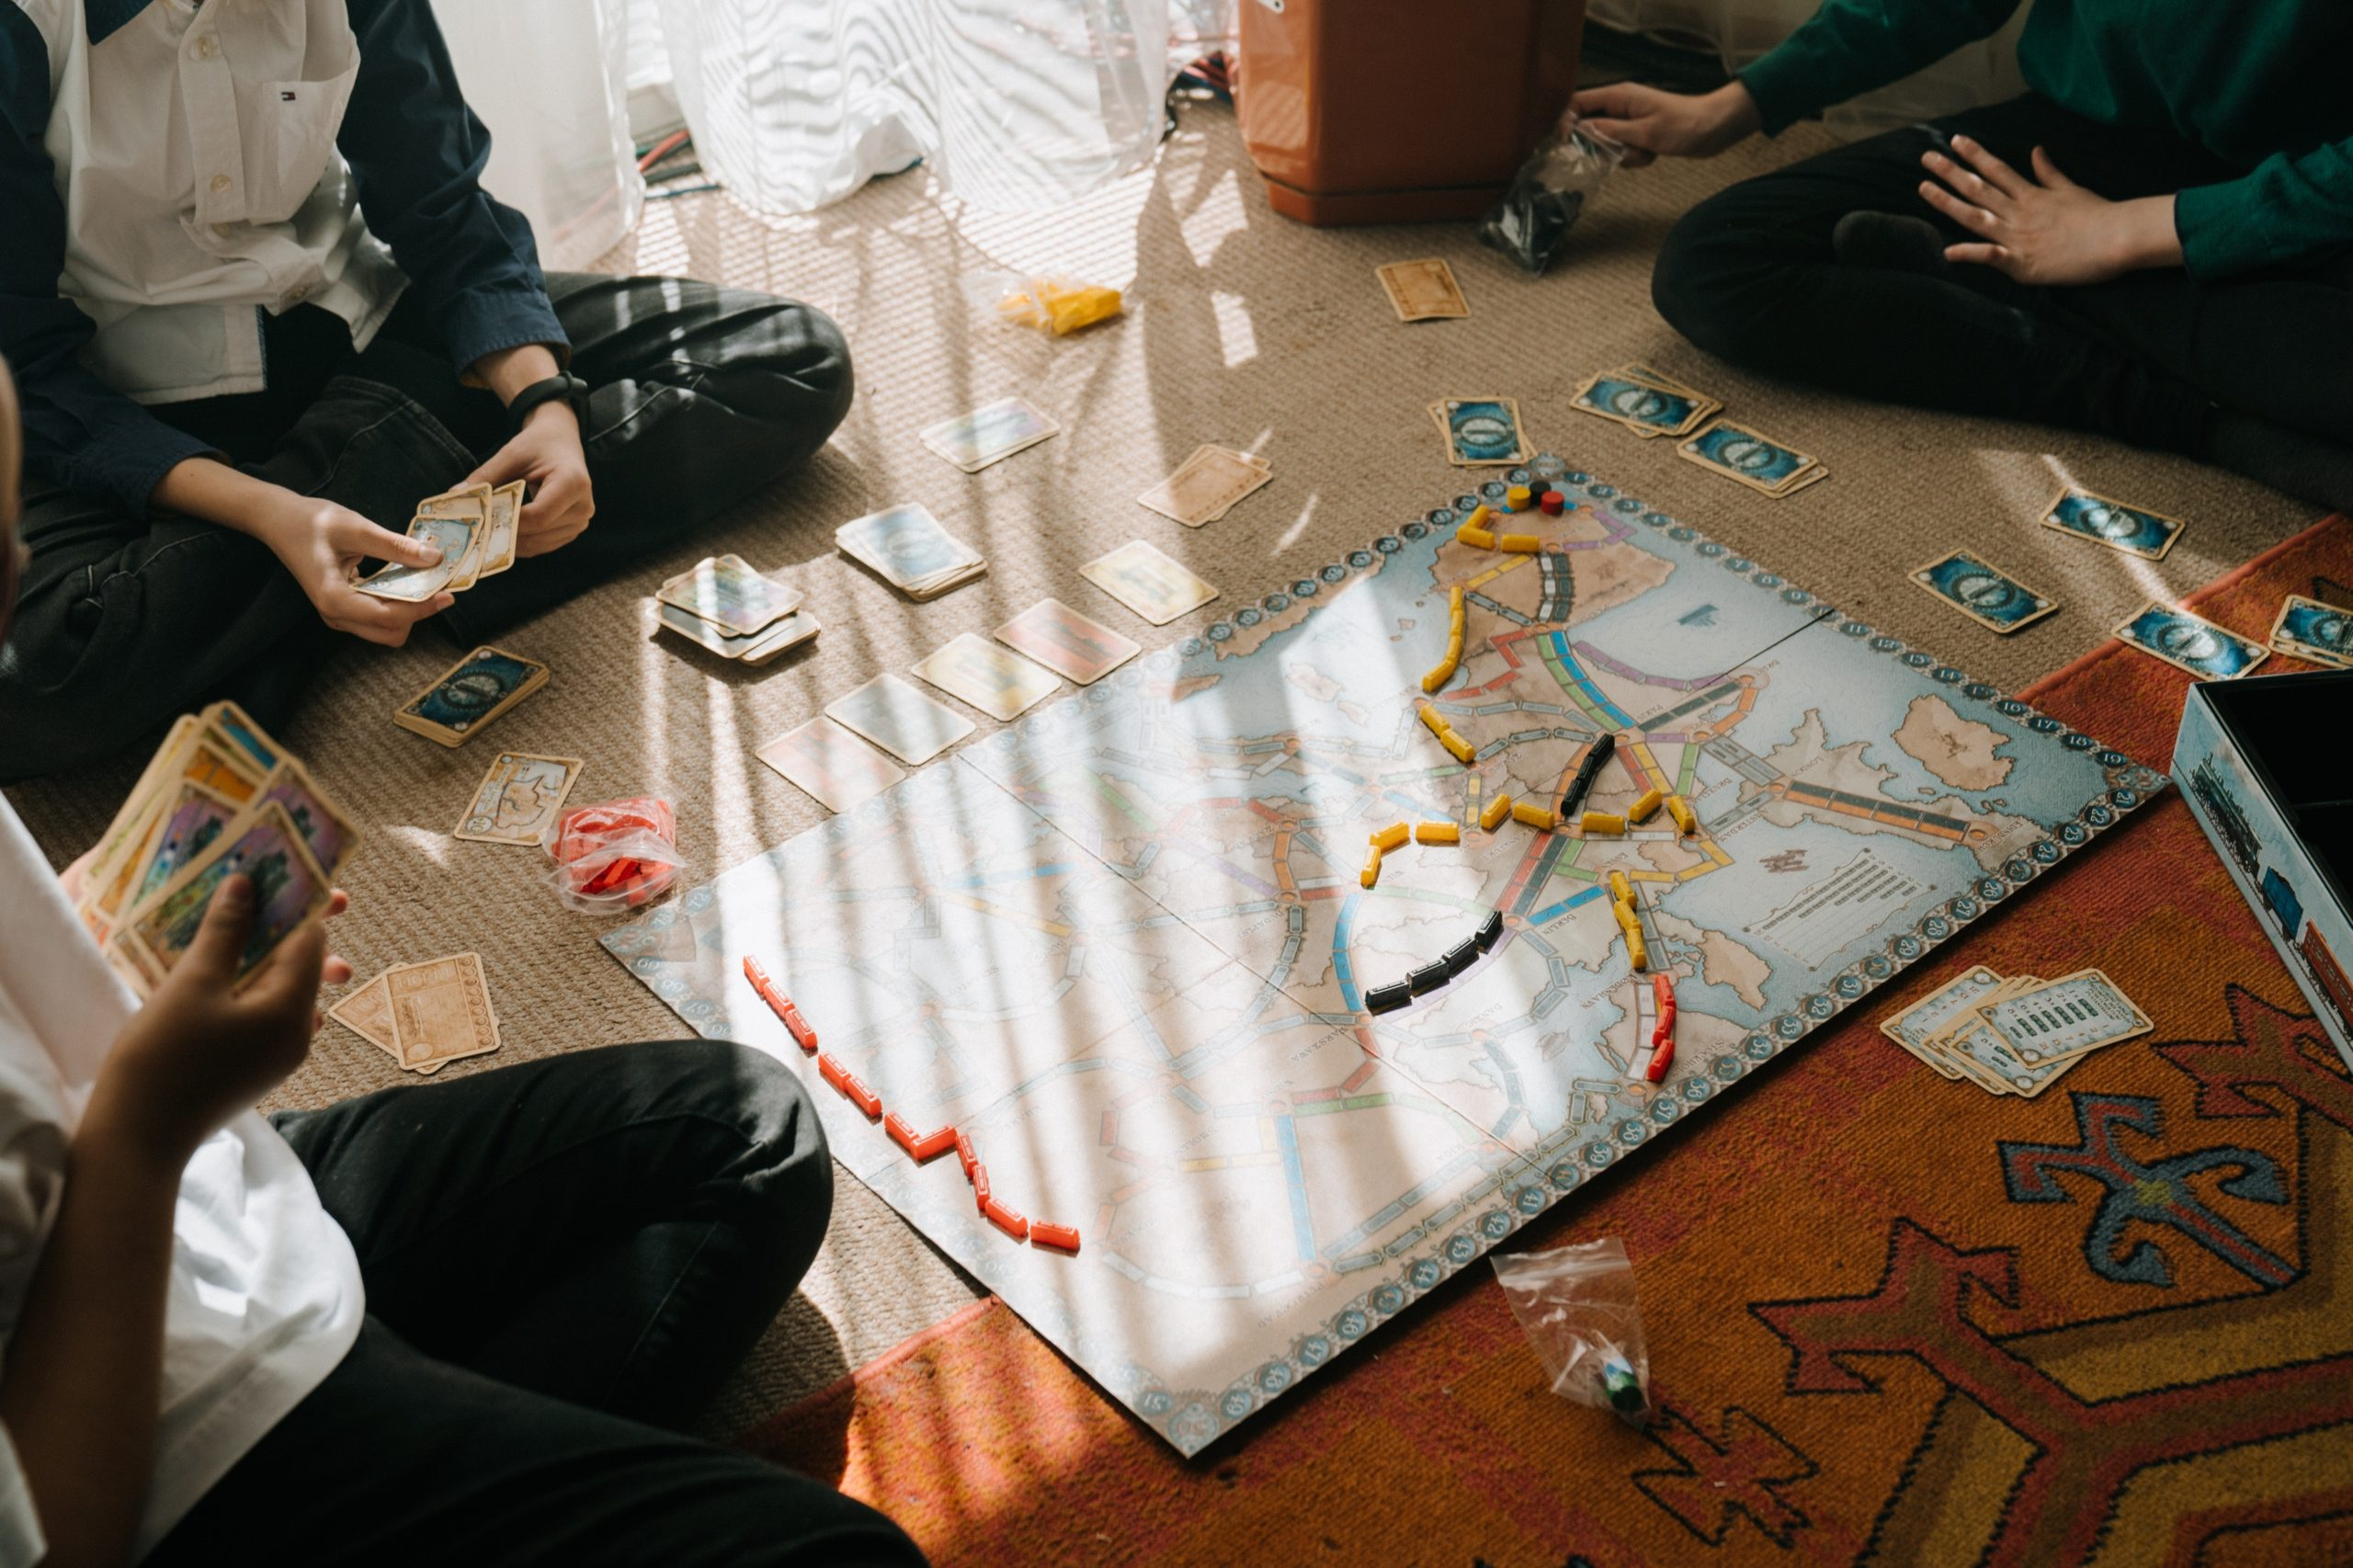 Some of the Best Board Games for Kids to Enjoy